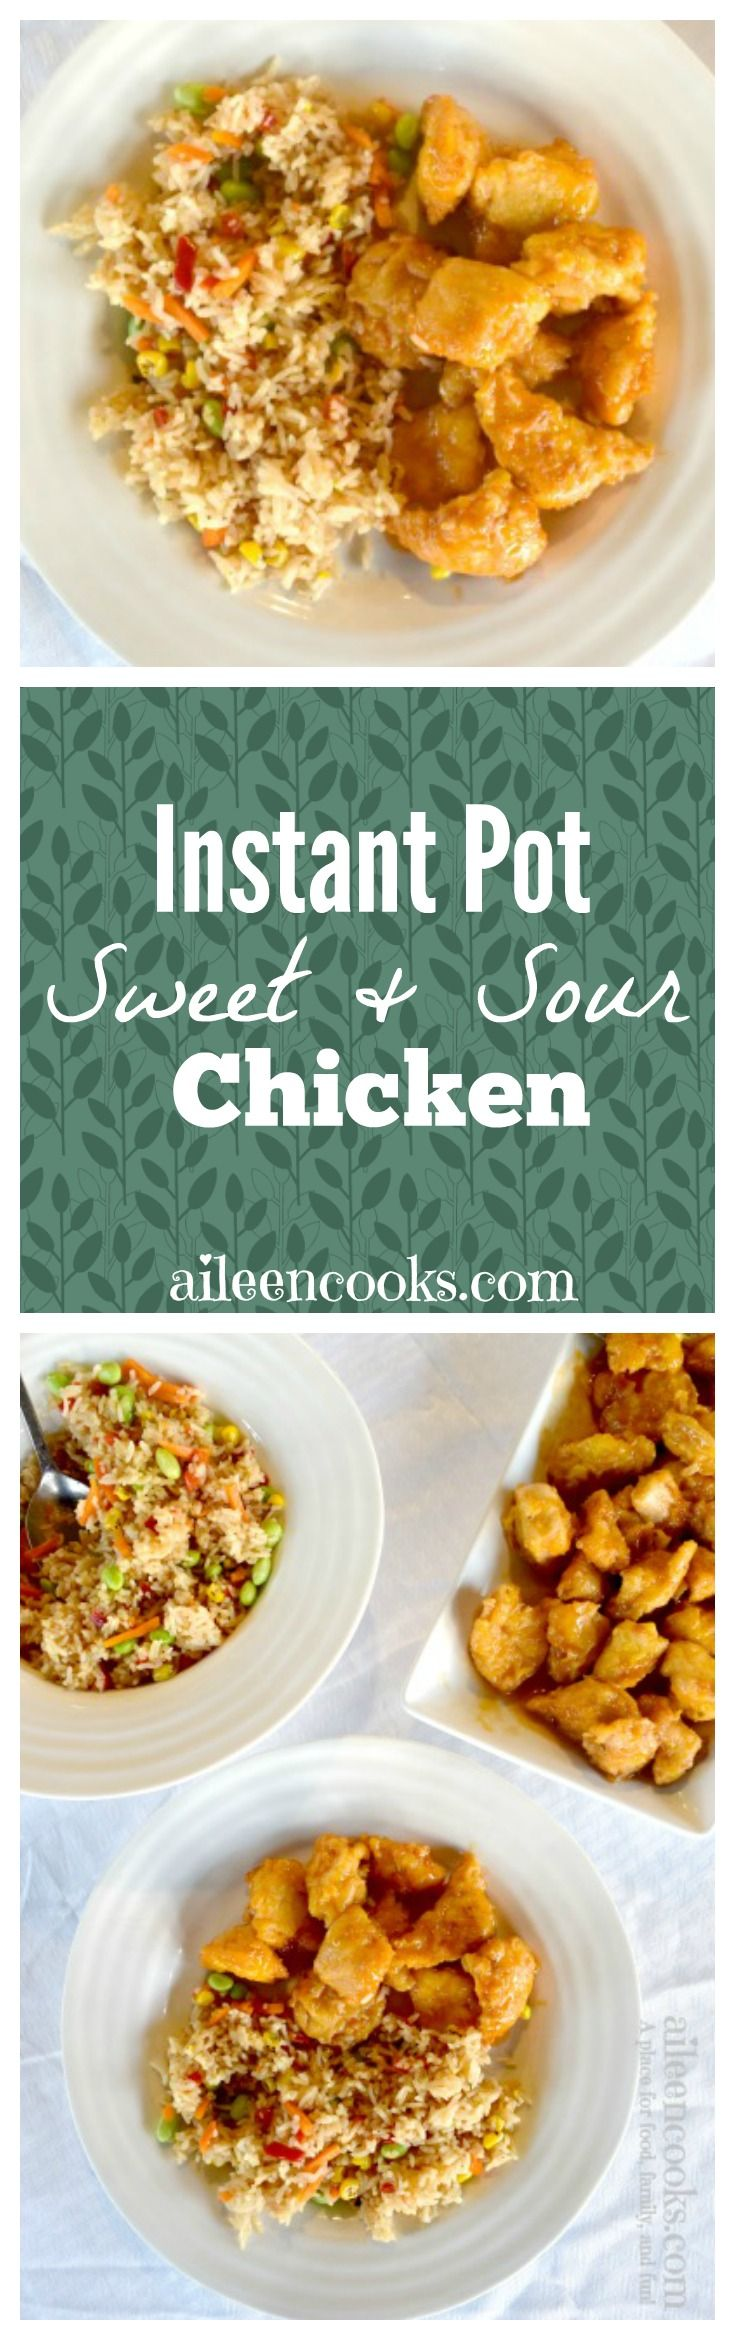 Enjoy delicious Chinese food at home with this recipe for Instant Pot Sweet and Sour Chicken. This recipe tastes just like take-out and it's ready just as fast, thanks to your handy pressure cooker. via @aileencooks